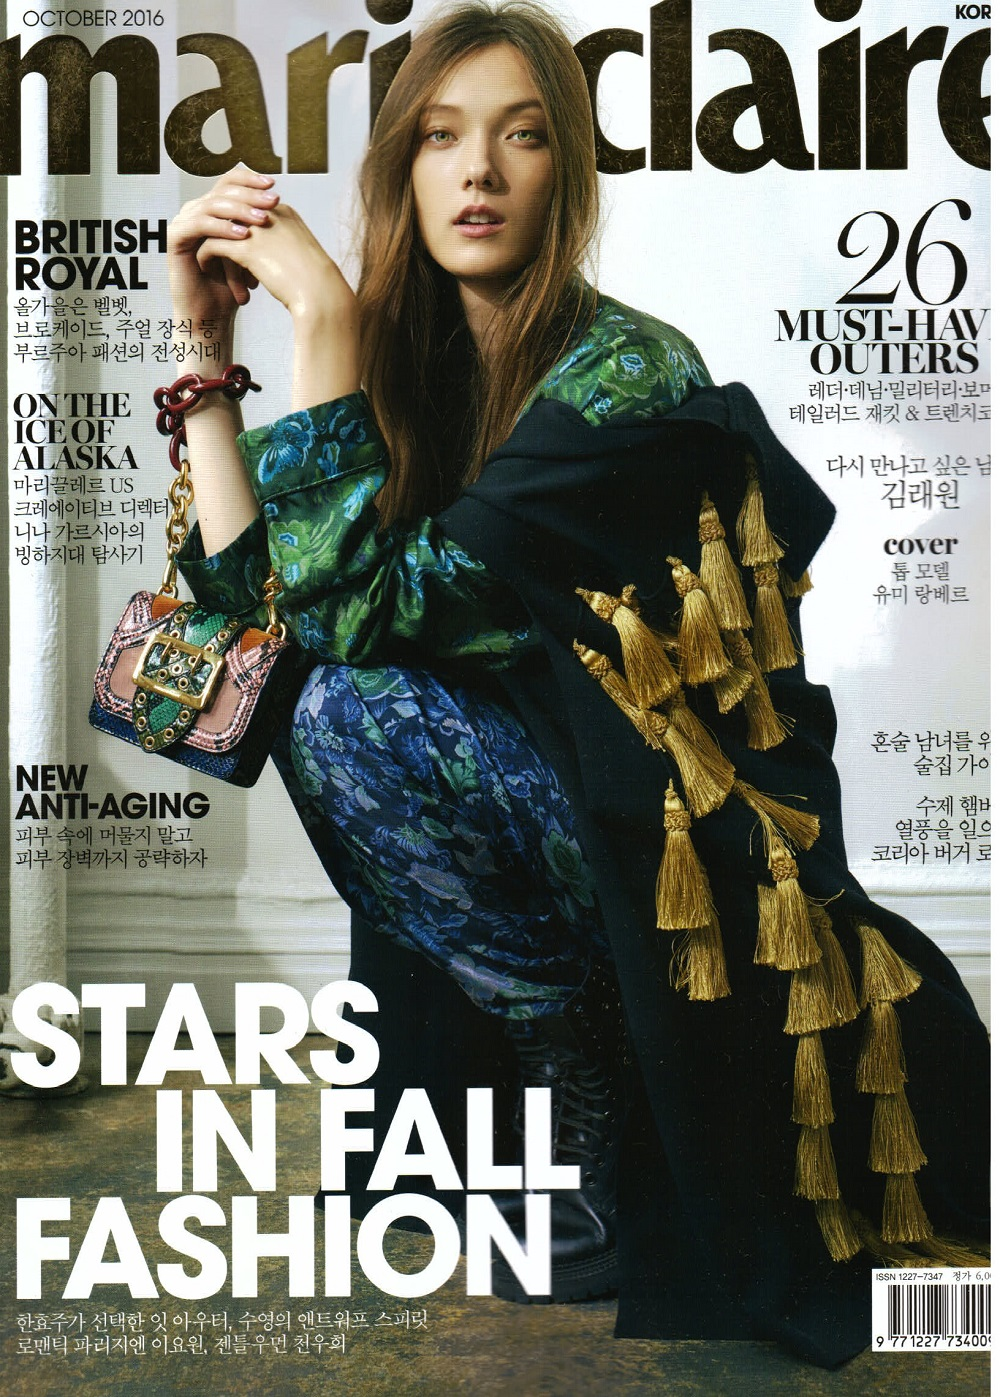 marie-claire-oct-16